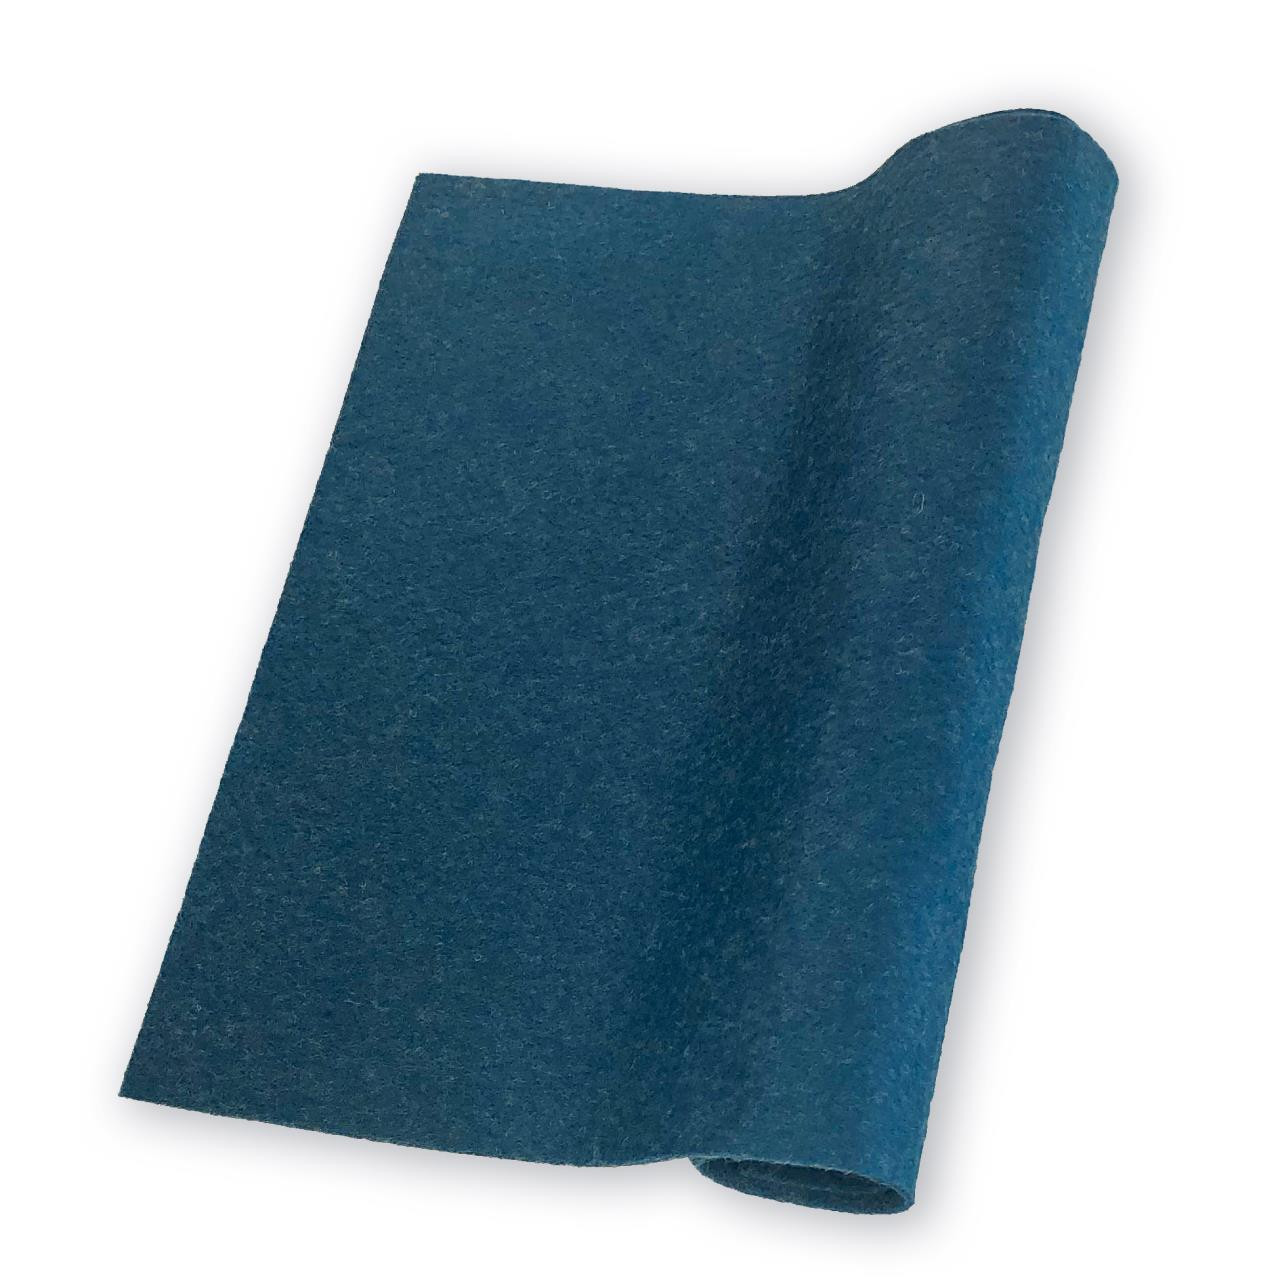 Denim, Essentials By Ellen Wool Felt 9 X 12 - 5 Pk -